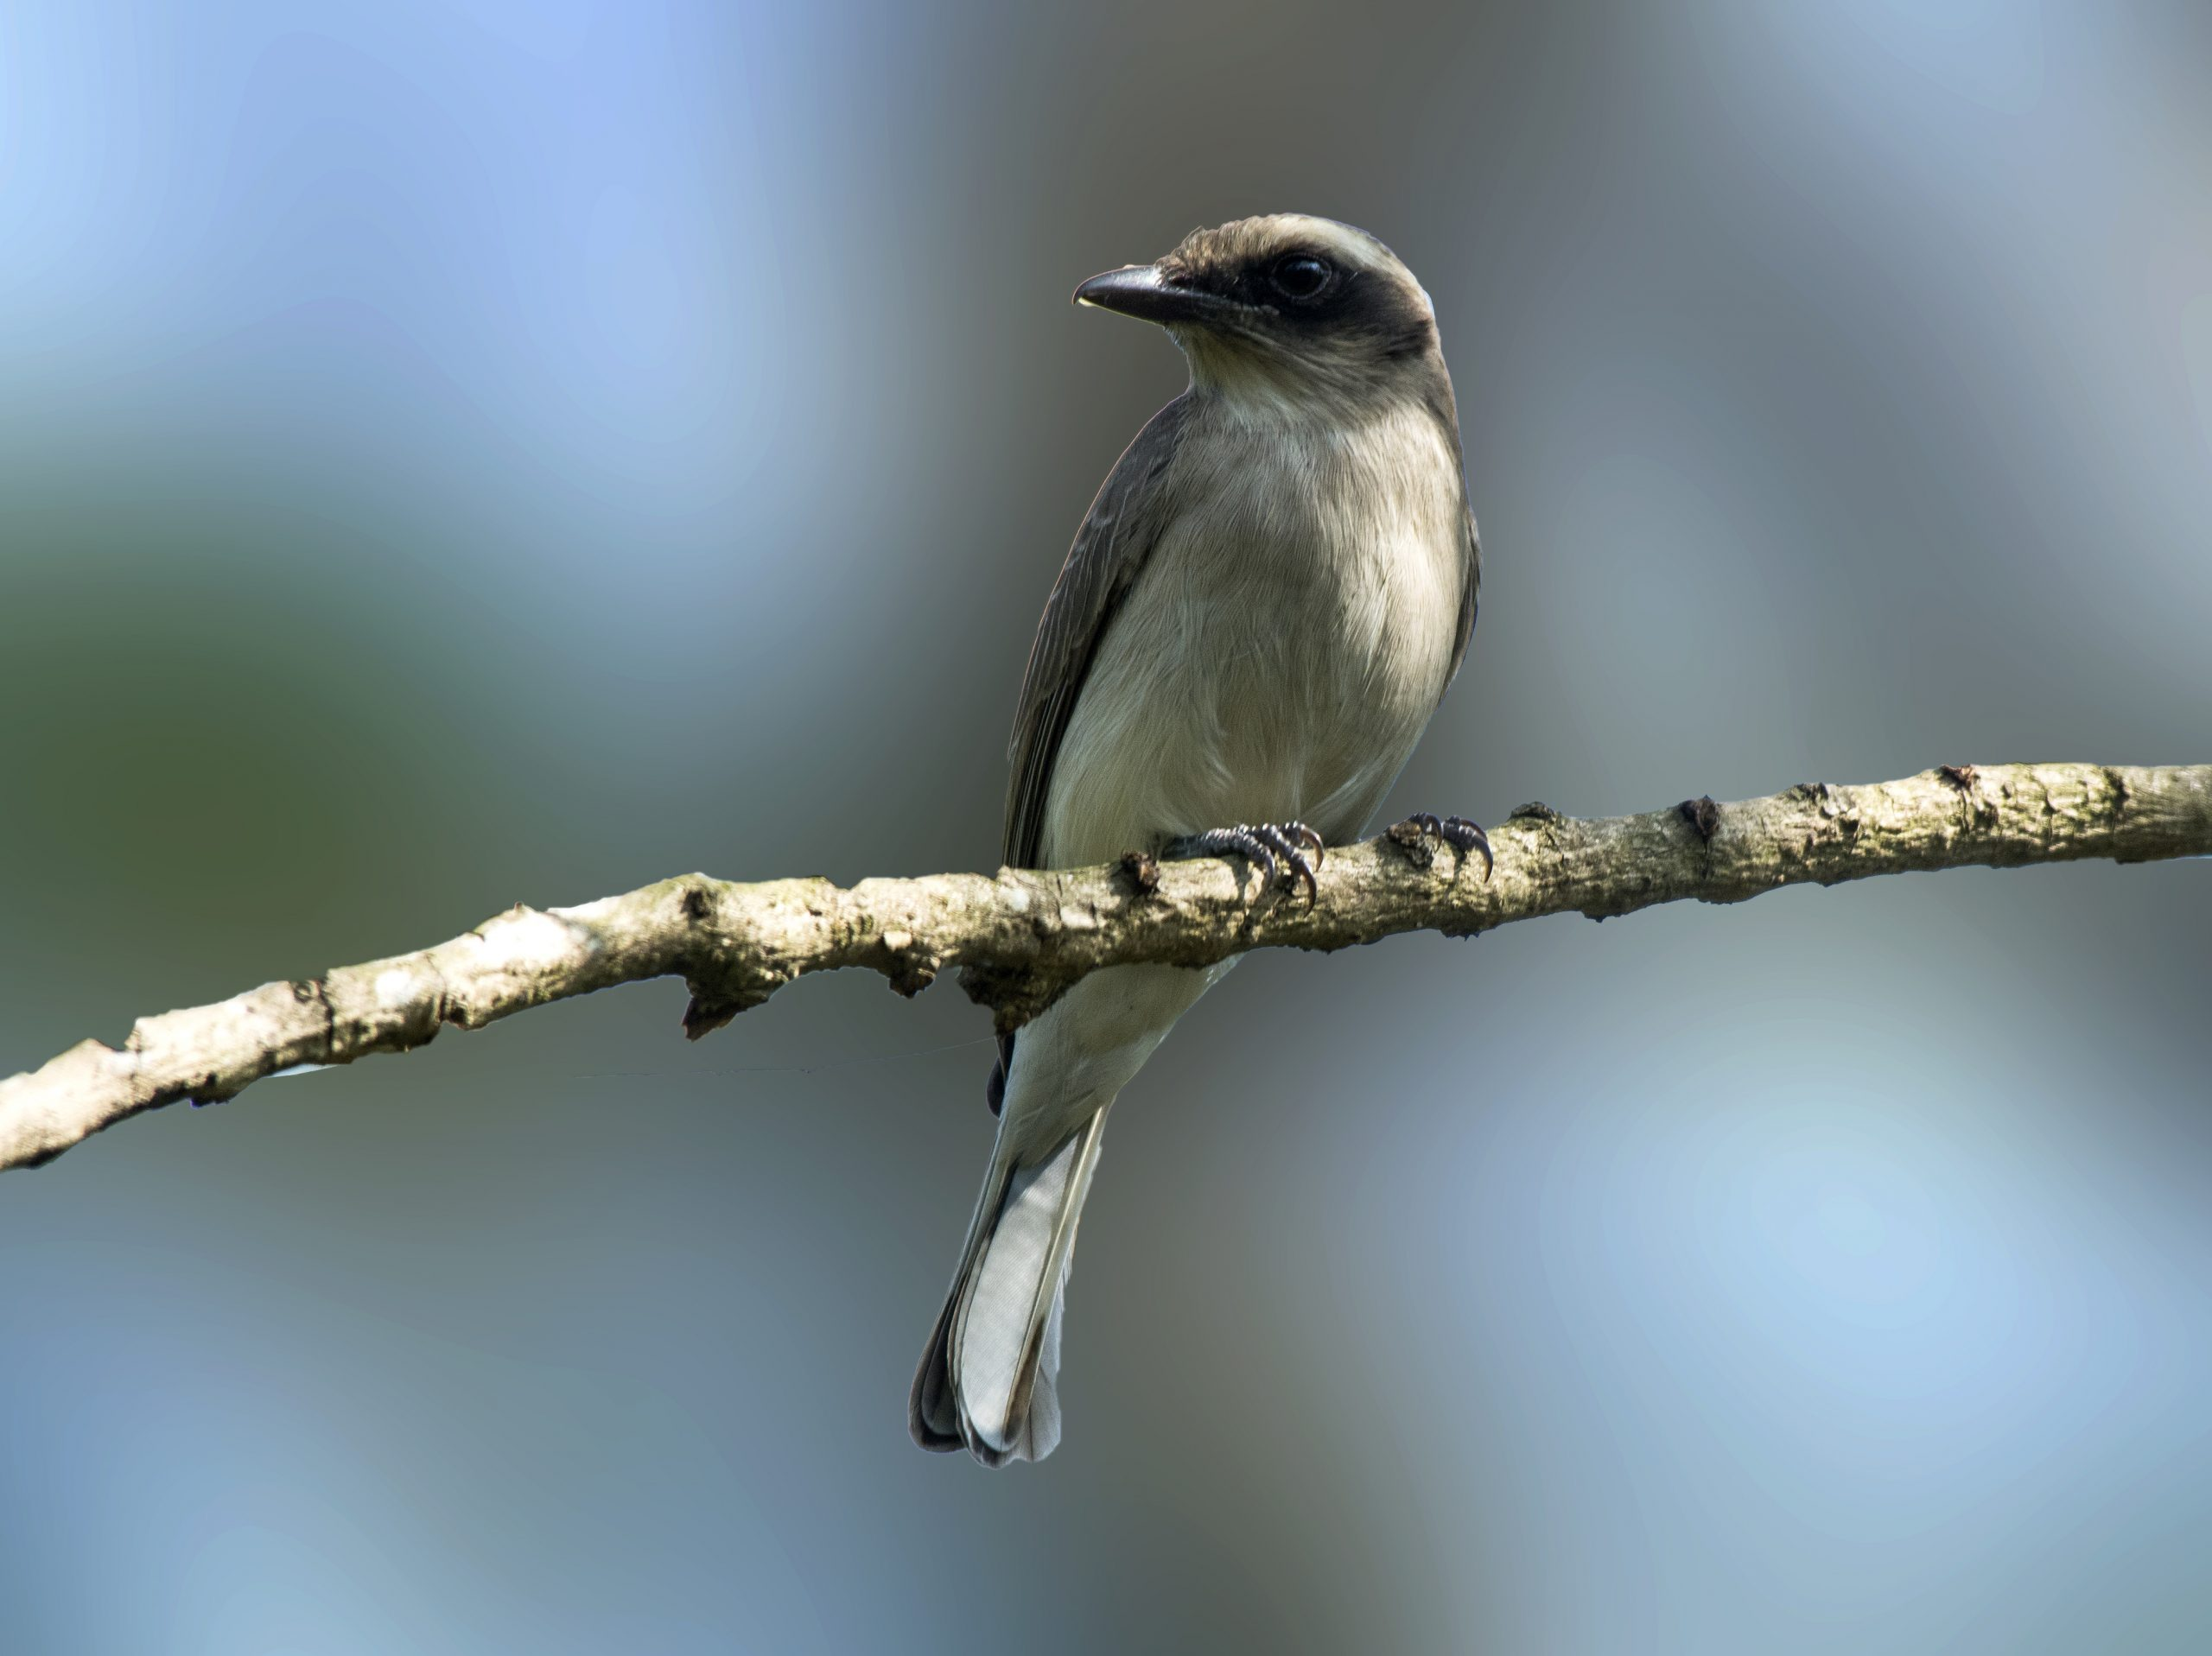 Common woodshrike perched on a tree branch